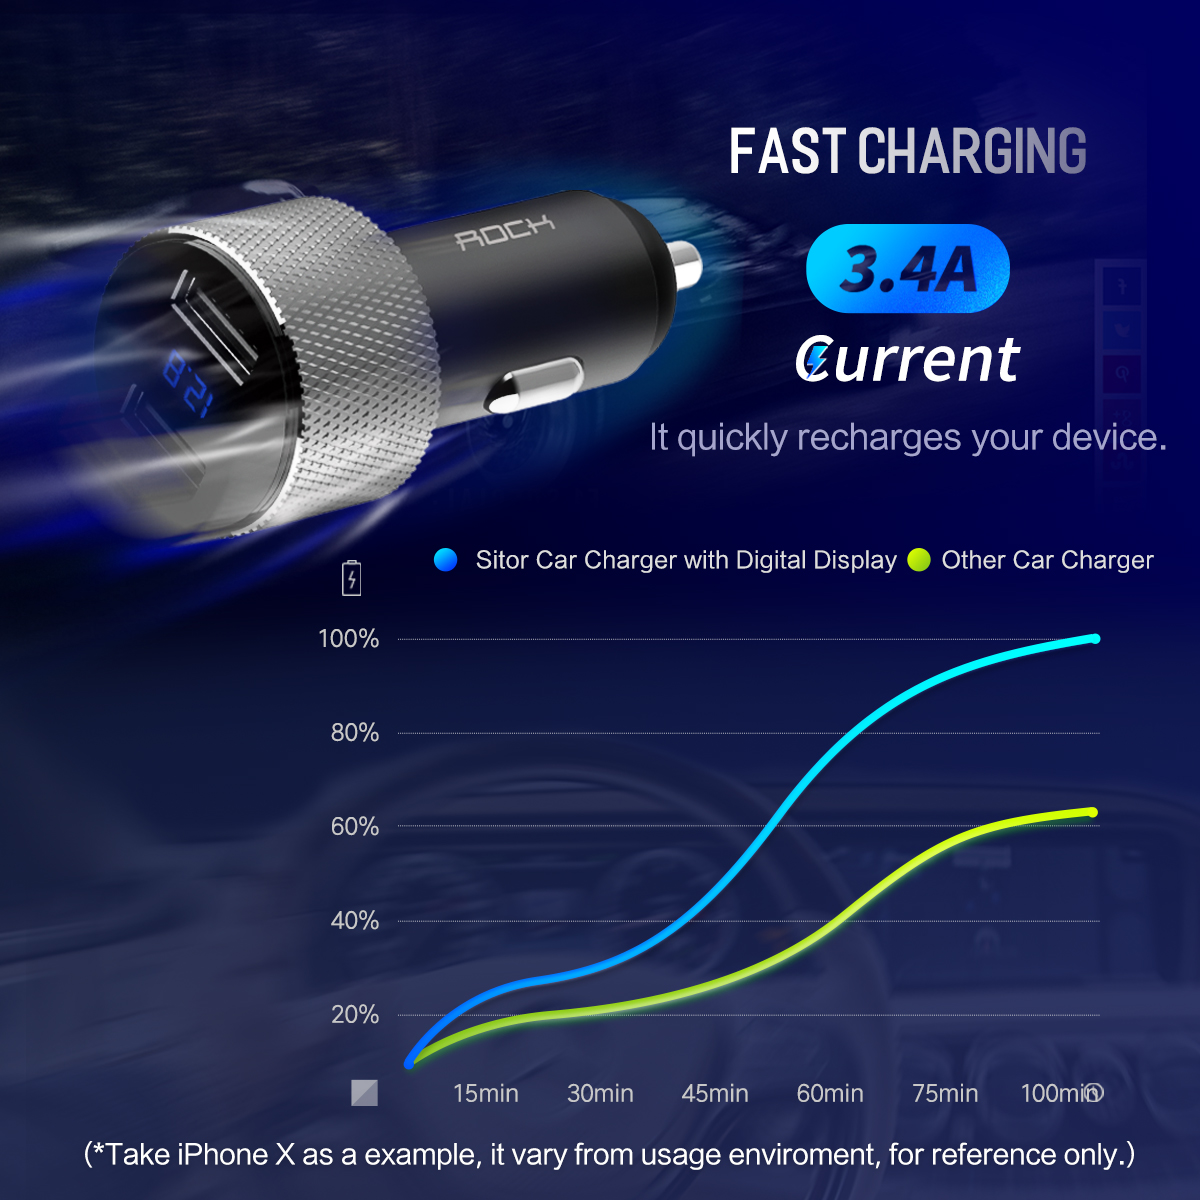 HTB1XQOAA4WYBuNjy1zkq6xGGpXaD - ROCK 5V 3.4A Metal Dual USB Car Charger Digital Display For iPhone X 8 XS MAX 7 Xiaomi Samsung Fast Charging Voltage Monitoring